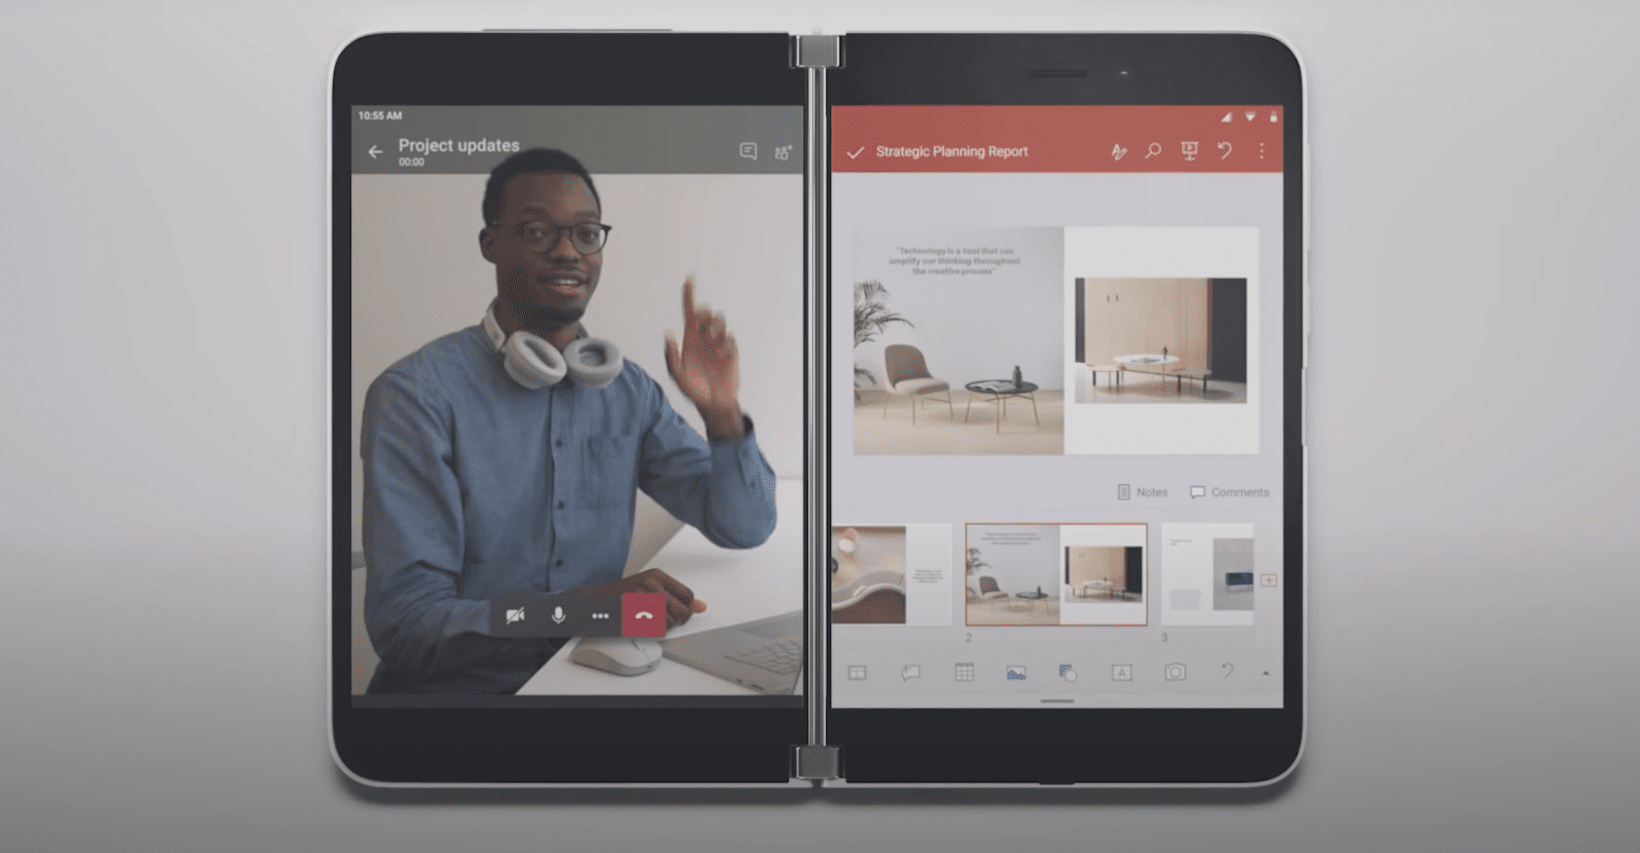 Rumor: Apple working on foldable iPhone with separate but 'seamless' screens 3